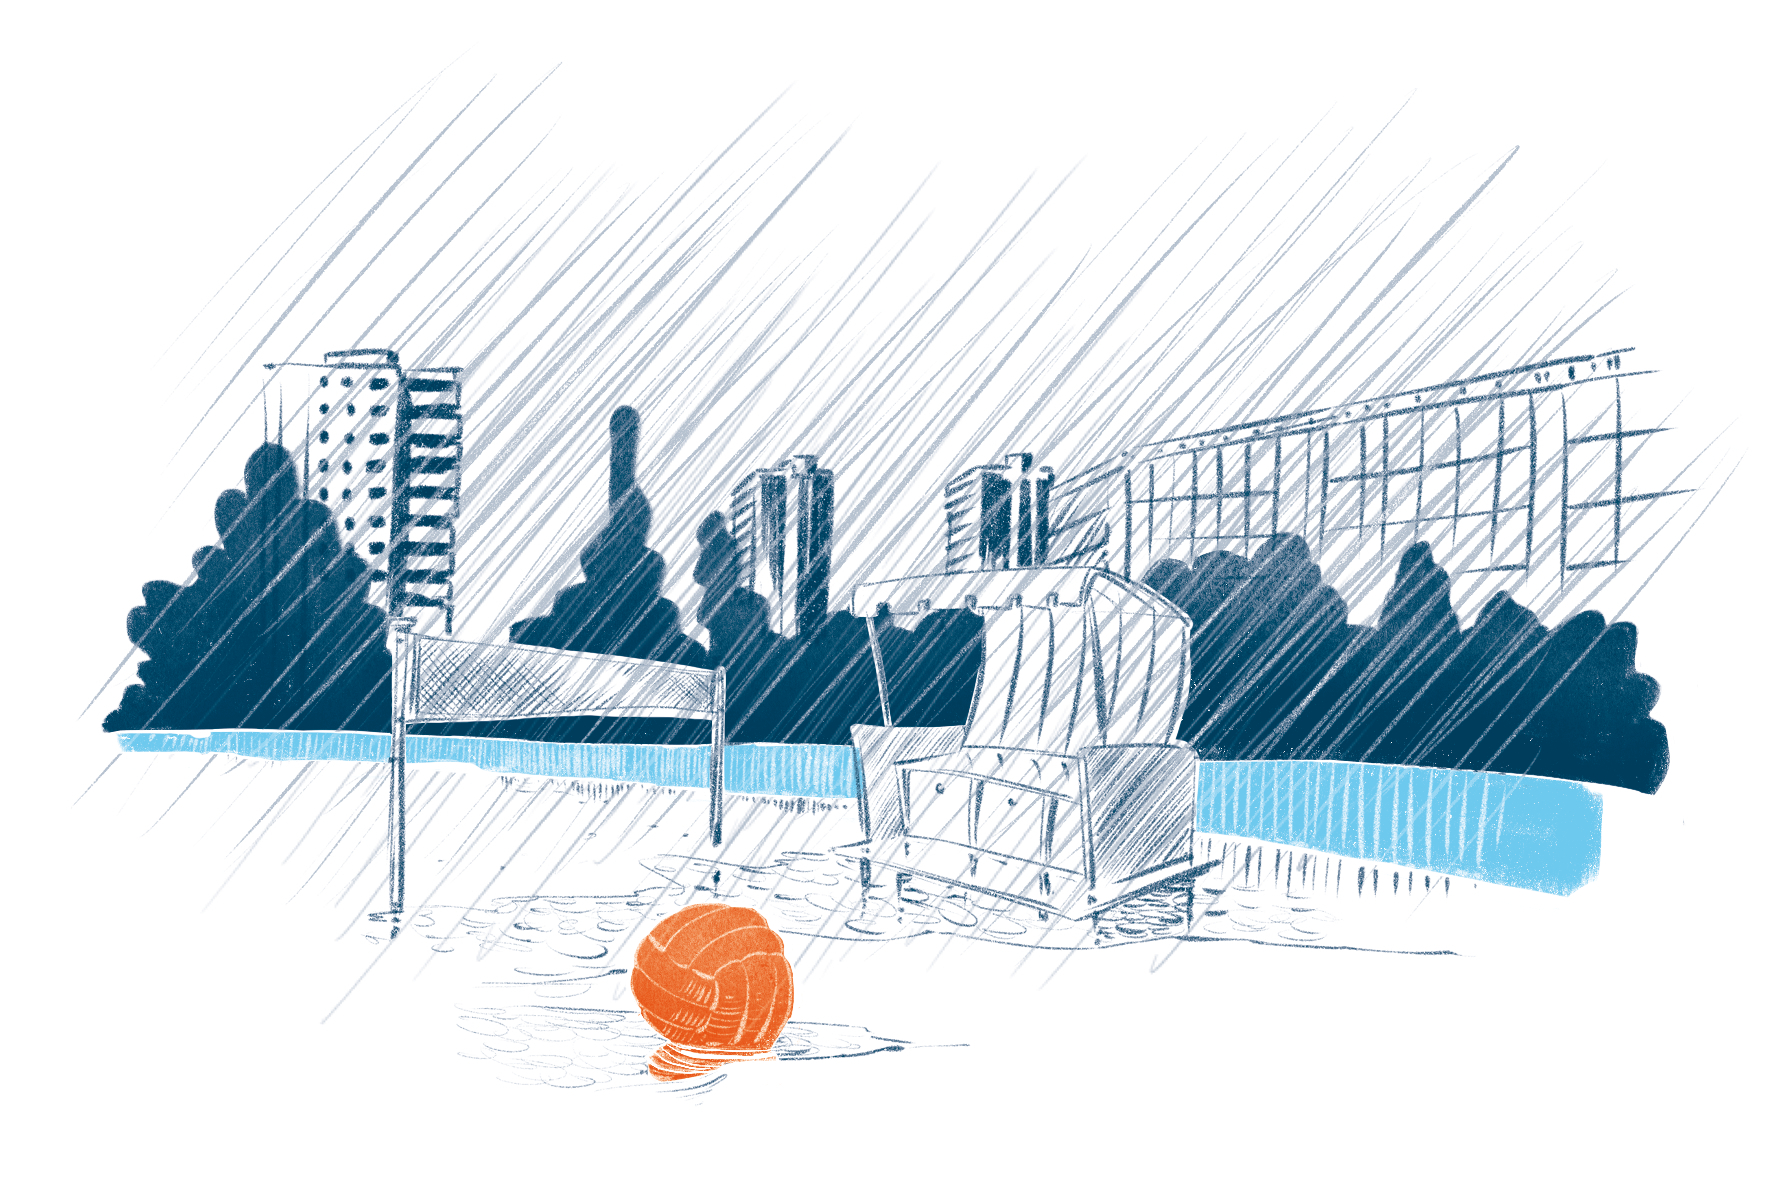 ©20180918-blankenhagen-illustration-KUZ4-editorial-rain-beachball-beach-city-berlin-150x100.jpg